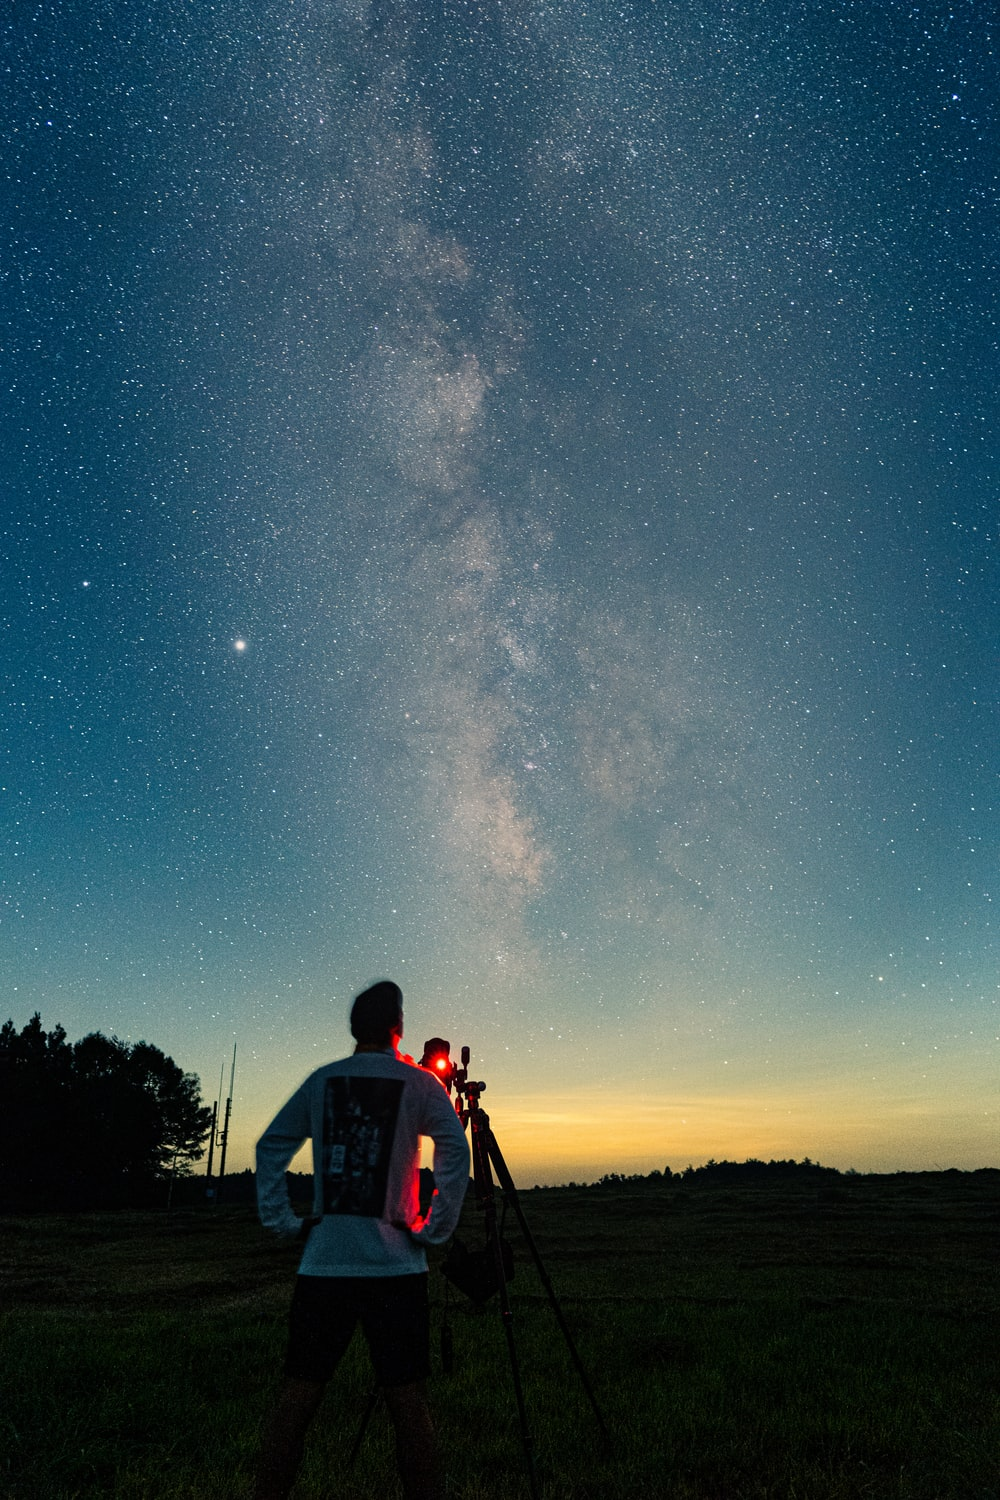 man in red shirt and black backpack standing on grass field under starry night